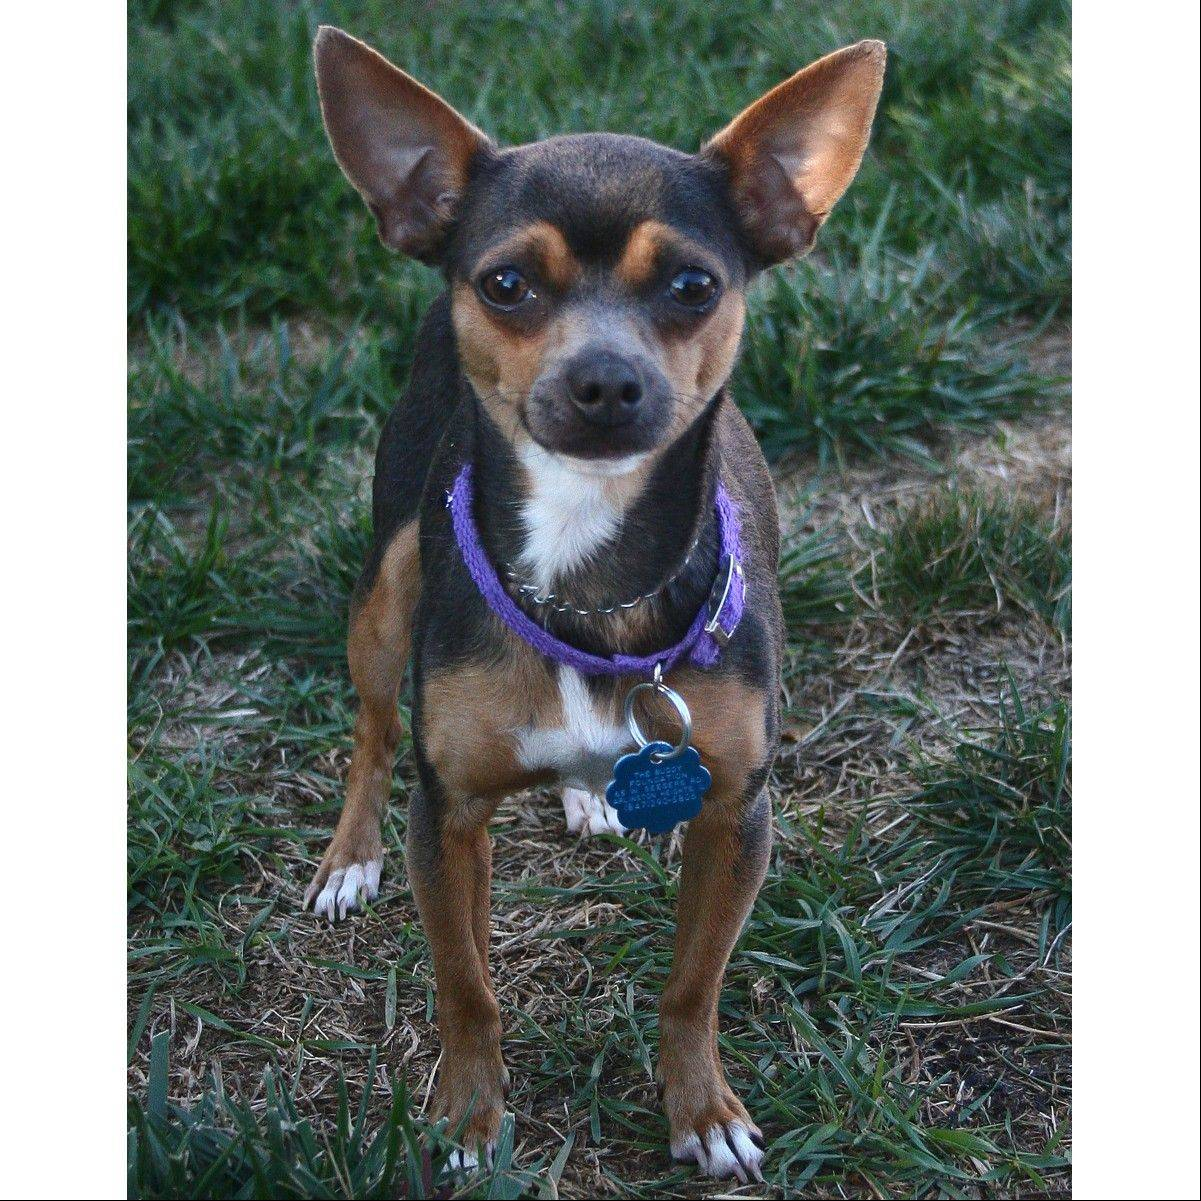 Willow, a female Chihuahua, is about six pounds and one year old.